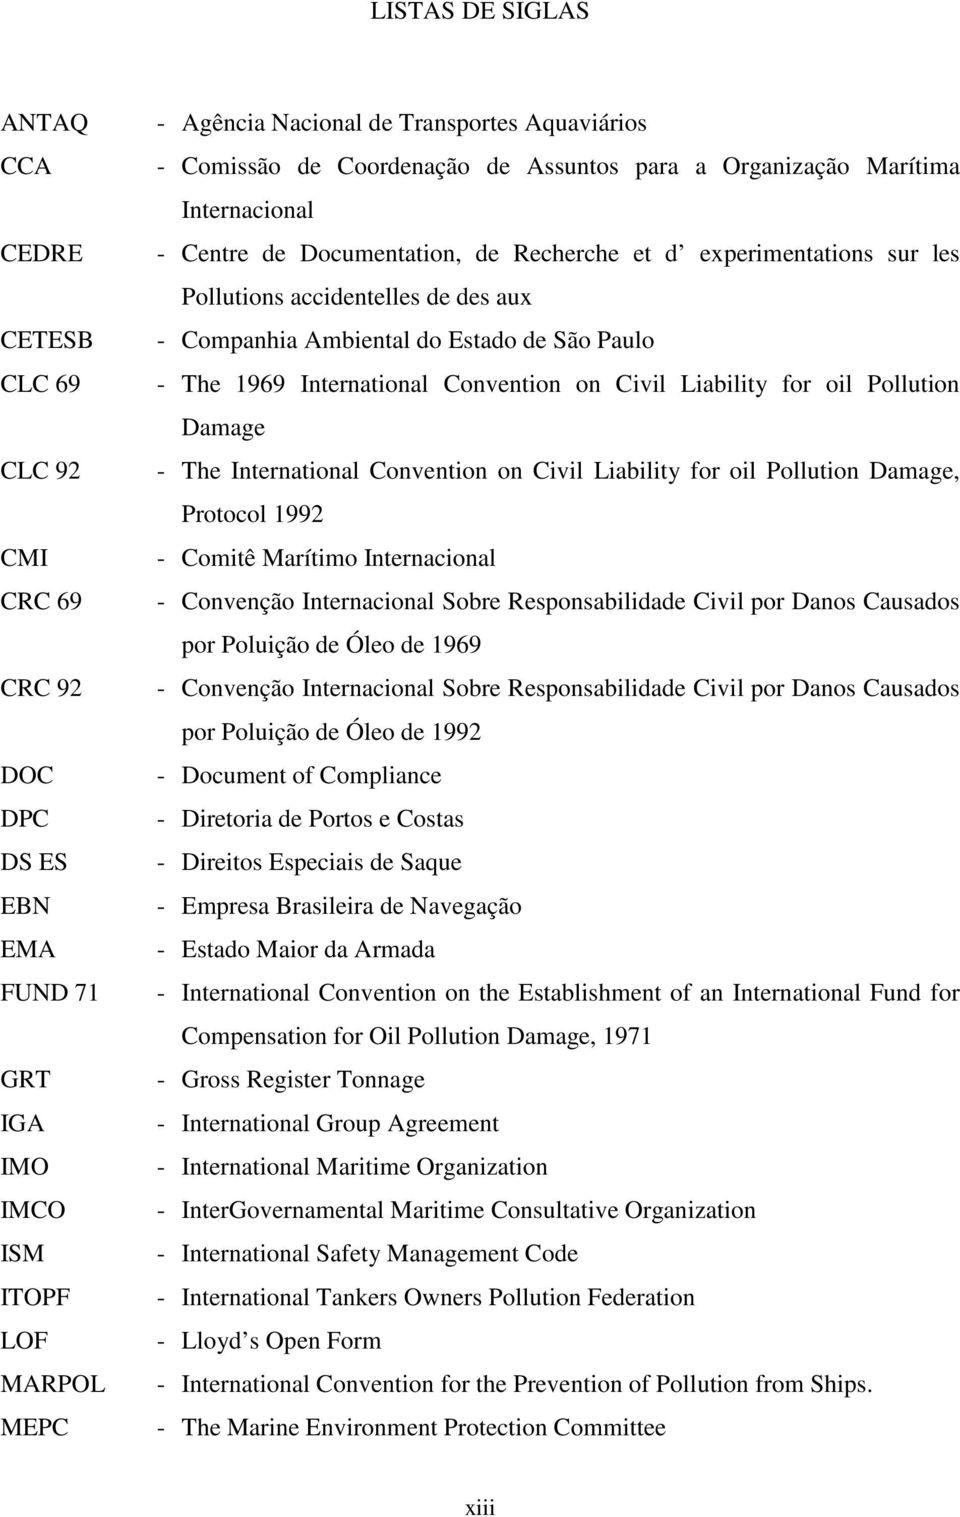 Ambiental do Estado de São Paulo - The 1969 International Convention on Civil Liability for oil Pollution Damage - The International Convention on Civil Liability for oil Pollution Damage, Protocol